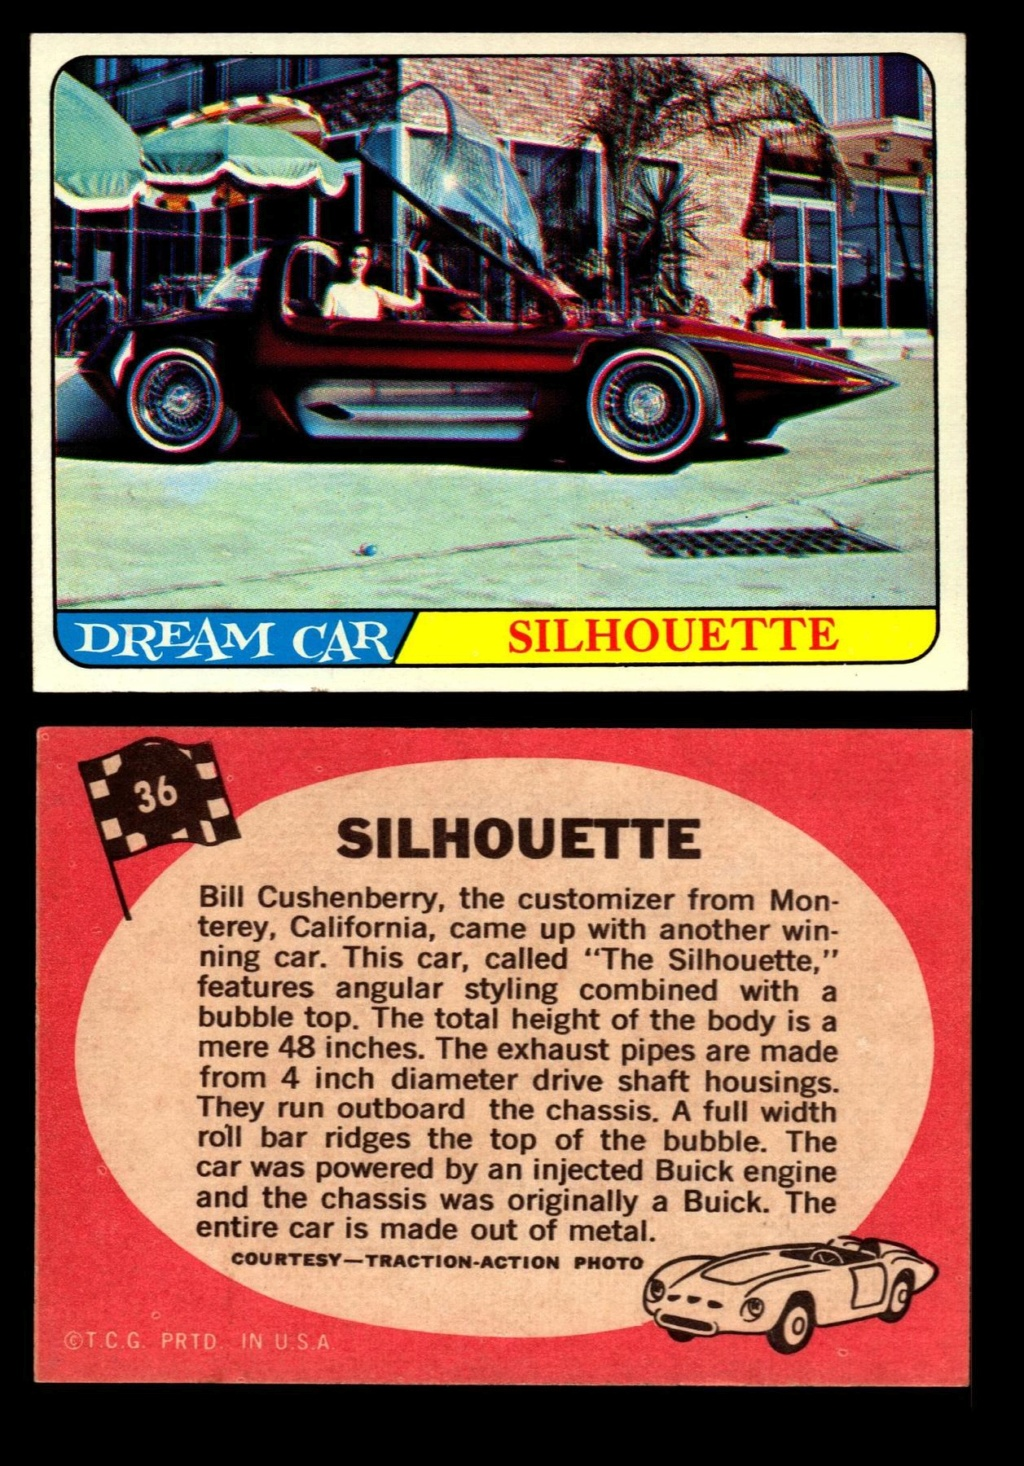 Hot Rods Topps - Vintage Trading Cards 1968 - Custom car - Dragster - Racer - Dream car - Barris Kustom City - Ed Roth Darrill Starbird, Gene Winfield, Bill Cuchenberry - Page 2 36_2e810